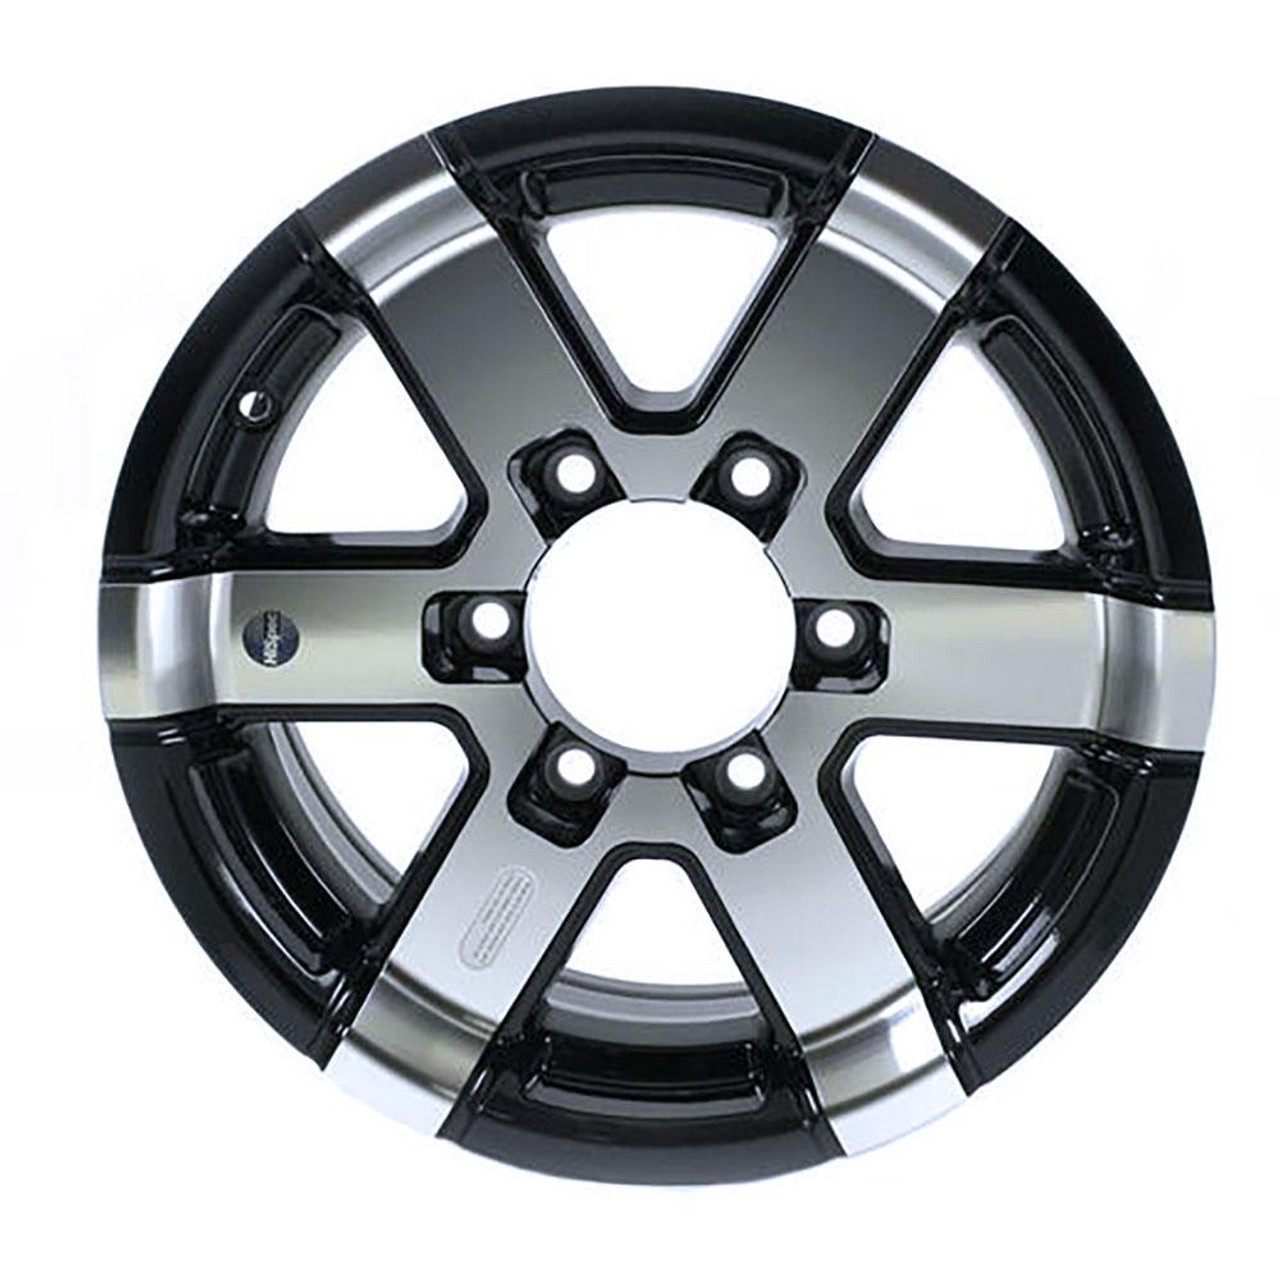 "15X6 6-Lug on 5.5"" Aluminum Series 07 Trailer Wheel - Black Inlay - 756655B"